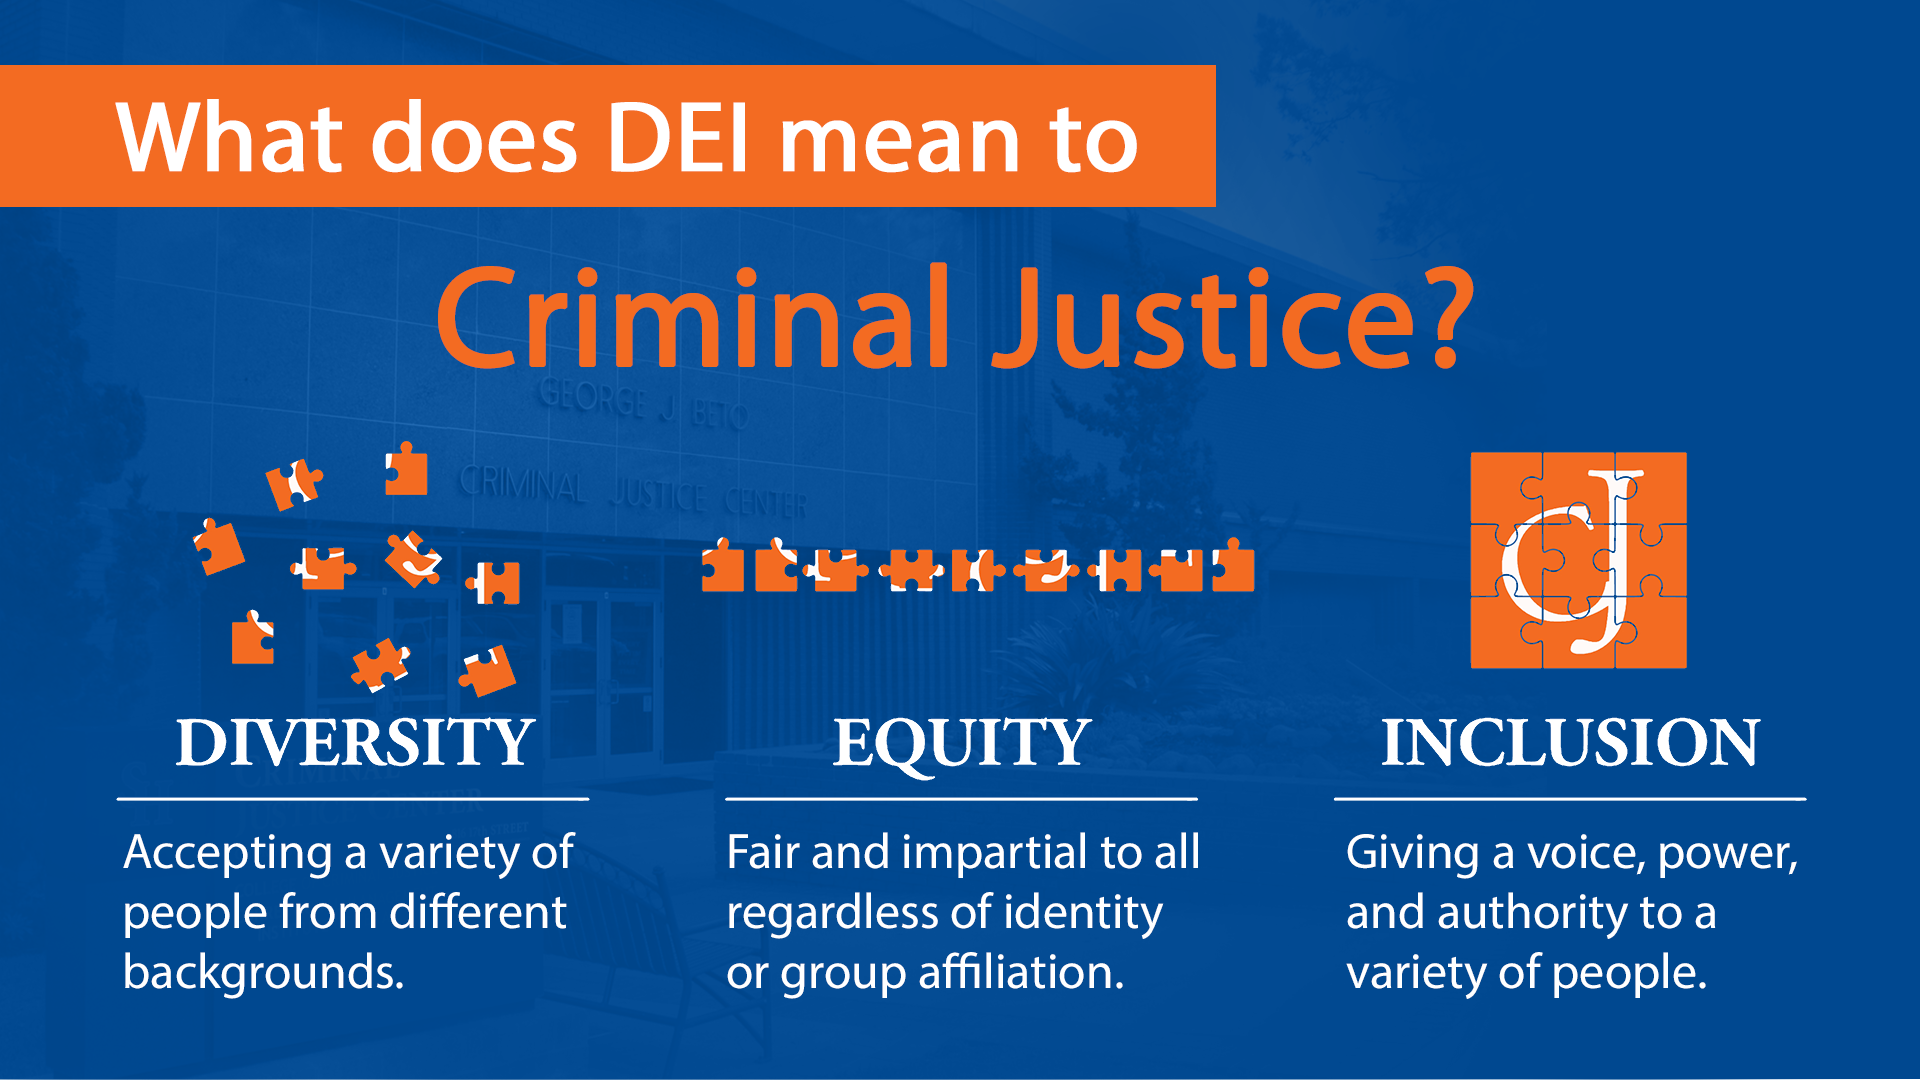 What does DEI Mean to Criminal Justice? Diversity: accepting a variety of people from different backgrounds. Equity: fair and impartial treatment no matter race, religion, gender, etc. Inclusion: giving a voice, power, and authority to a variety of people.